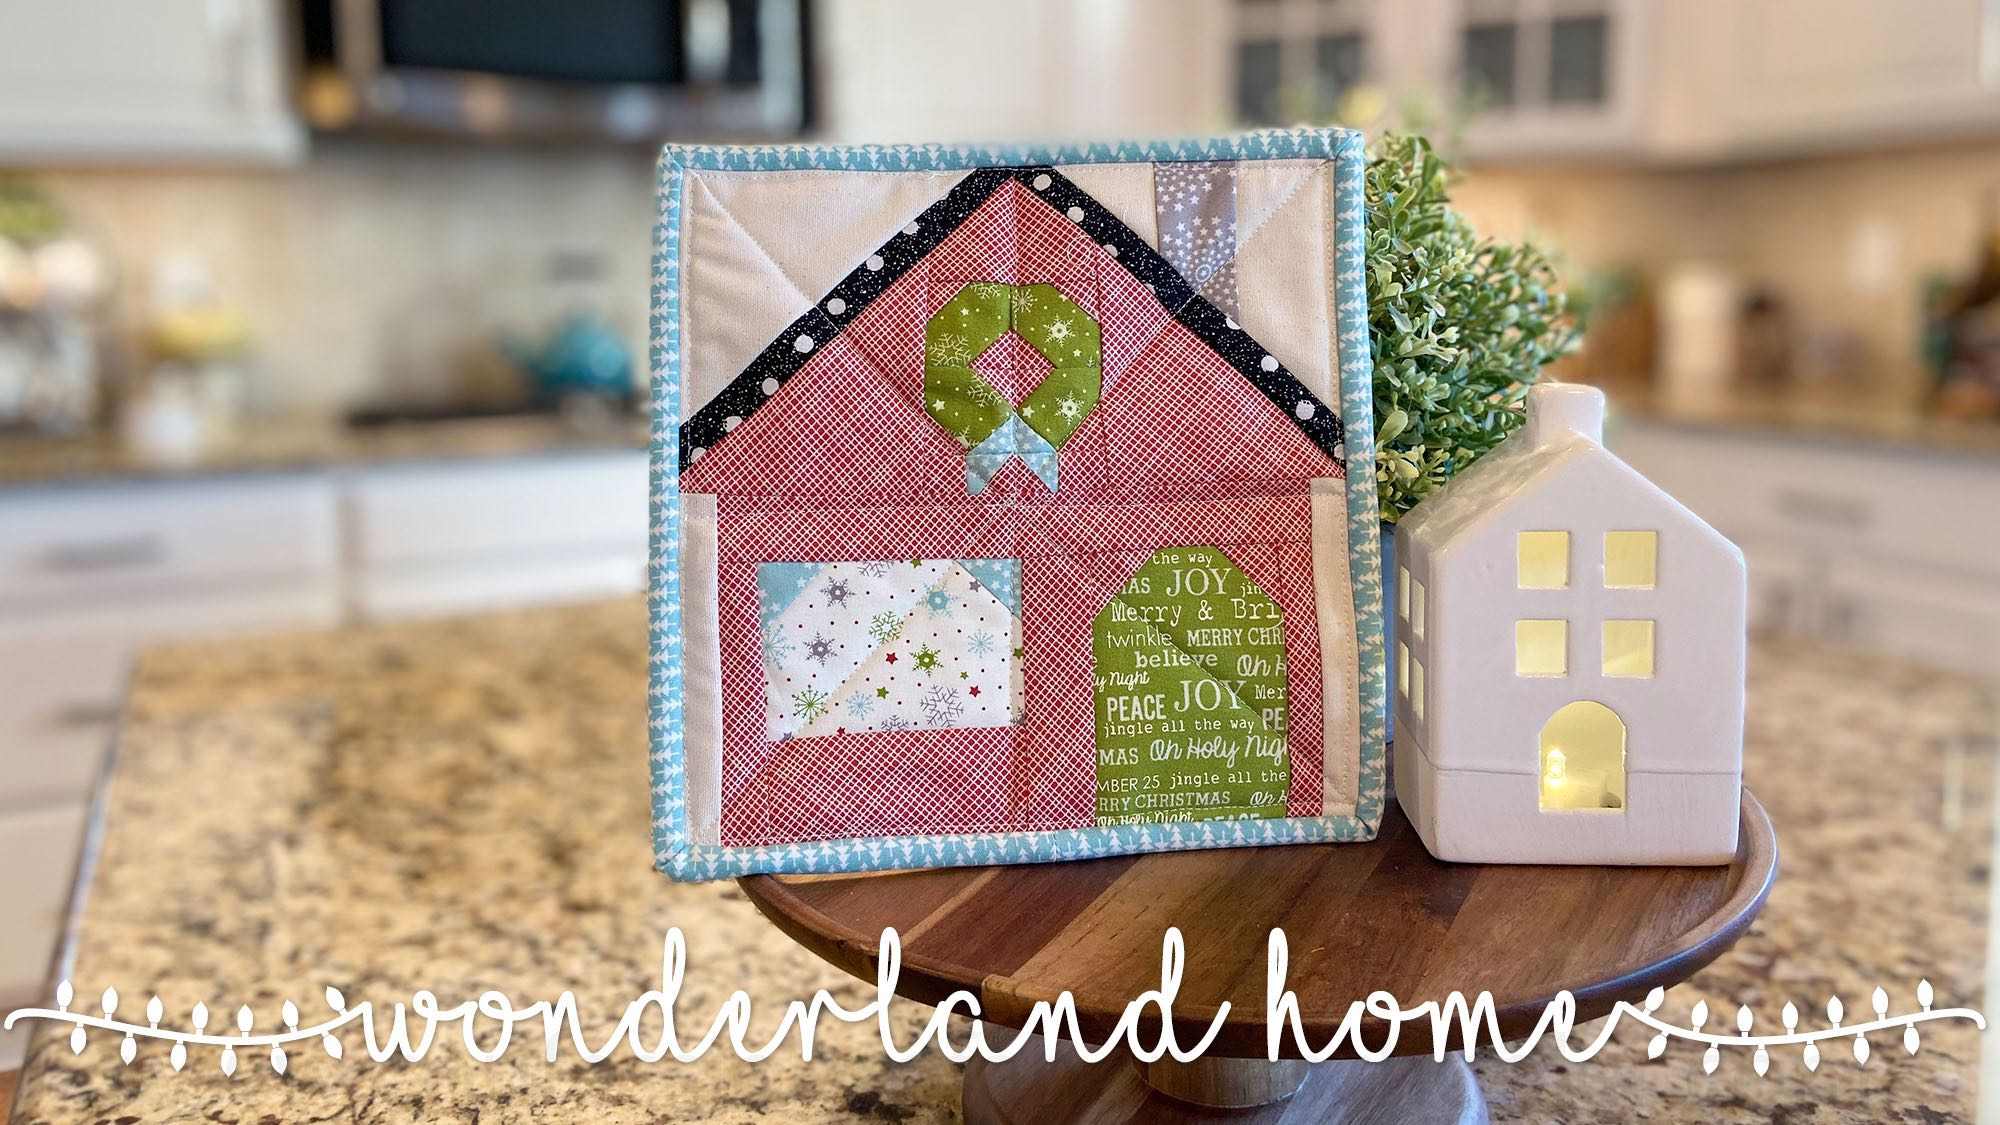 Wonderland Home Pot Holder Pattern